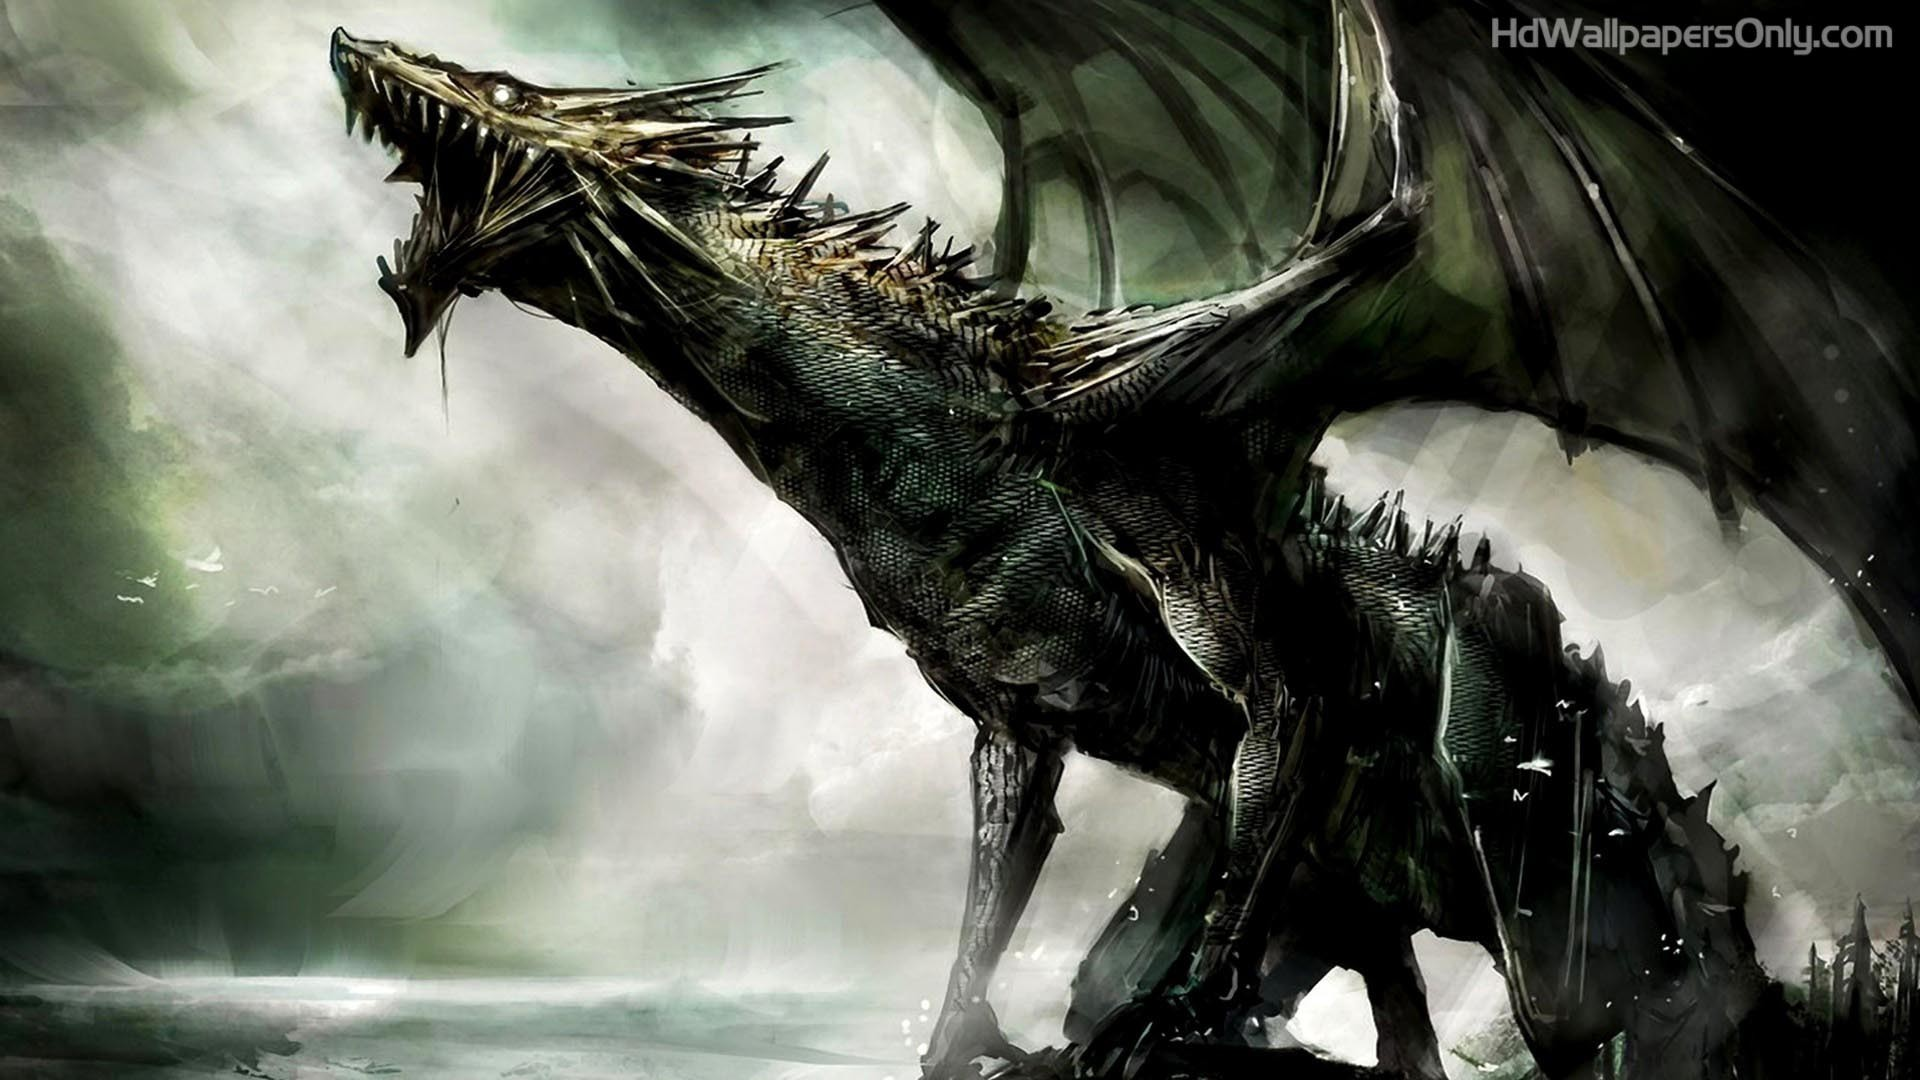 black dragon wallpaper desktop 65 images